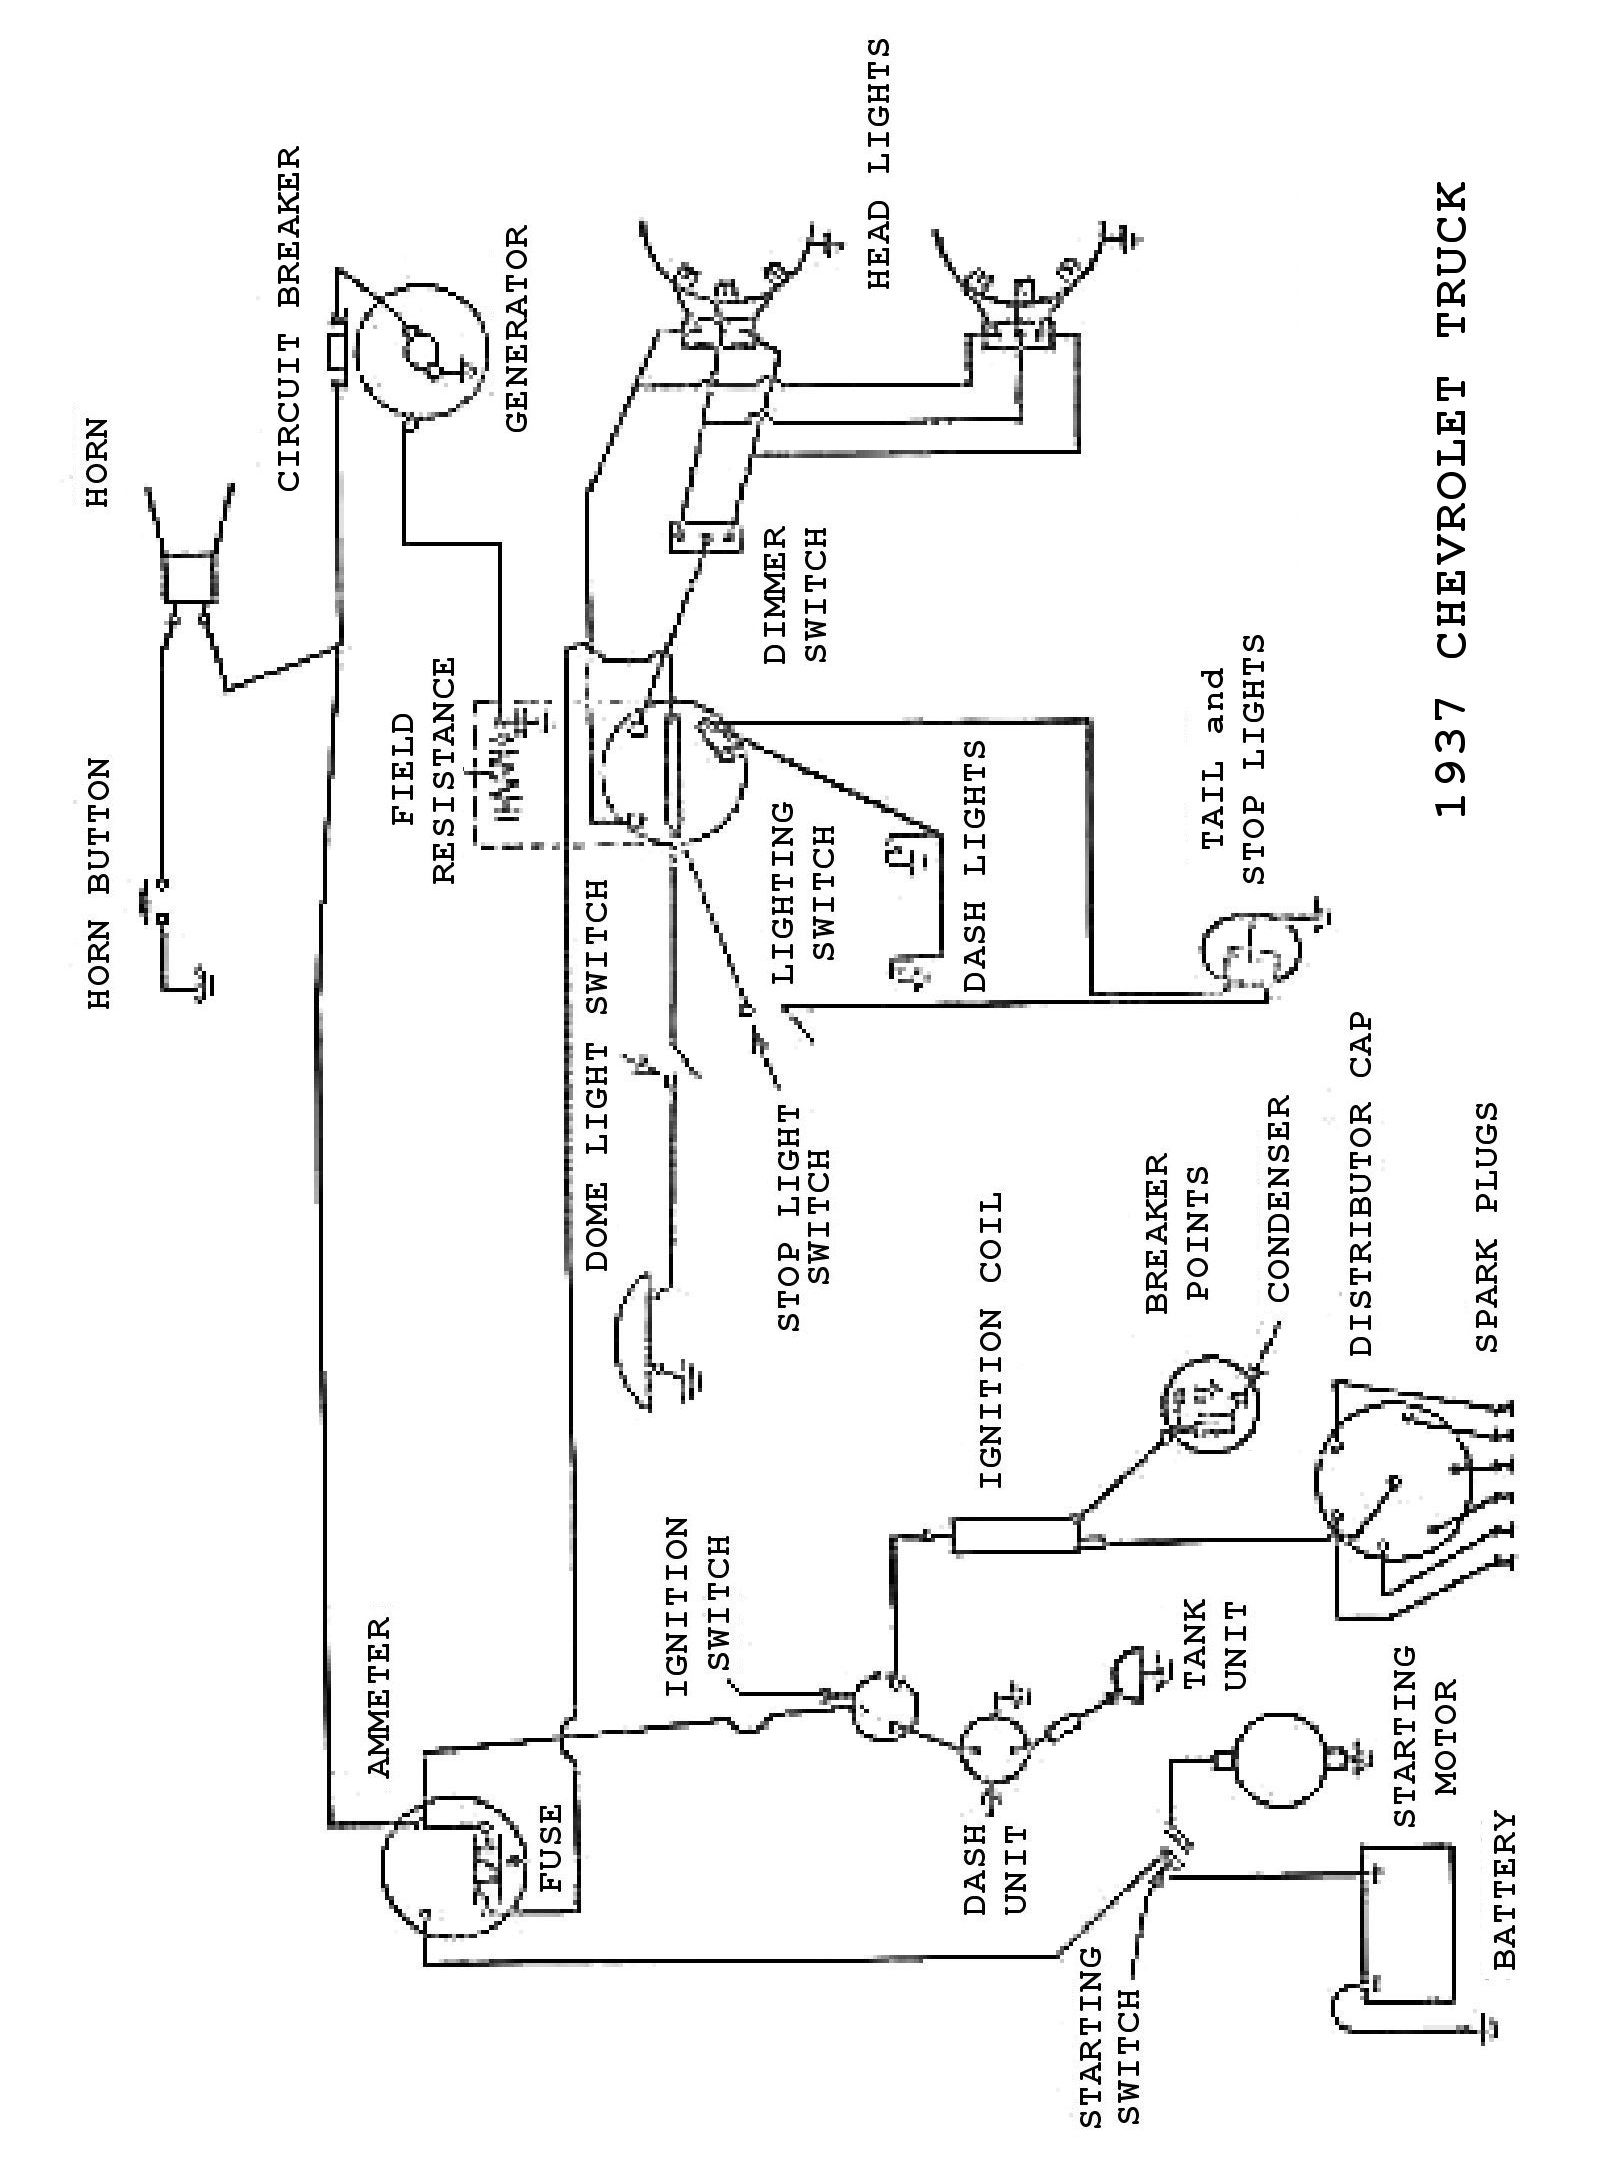 chevy wiring diagramsChevy Styleline Deluxe 2 Door On 1956 Ford Generator Wiring Diagram #2